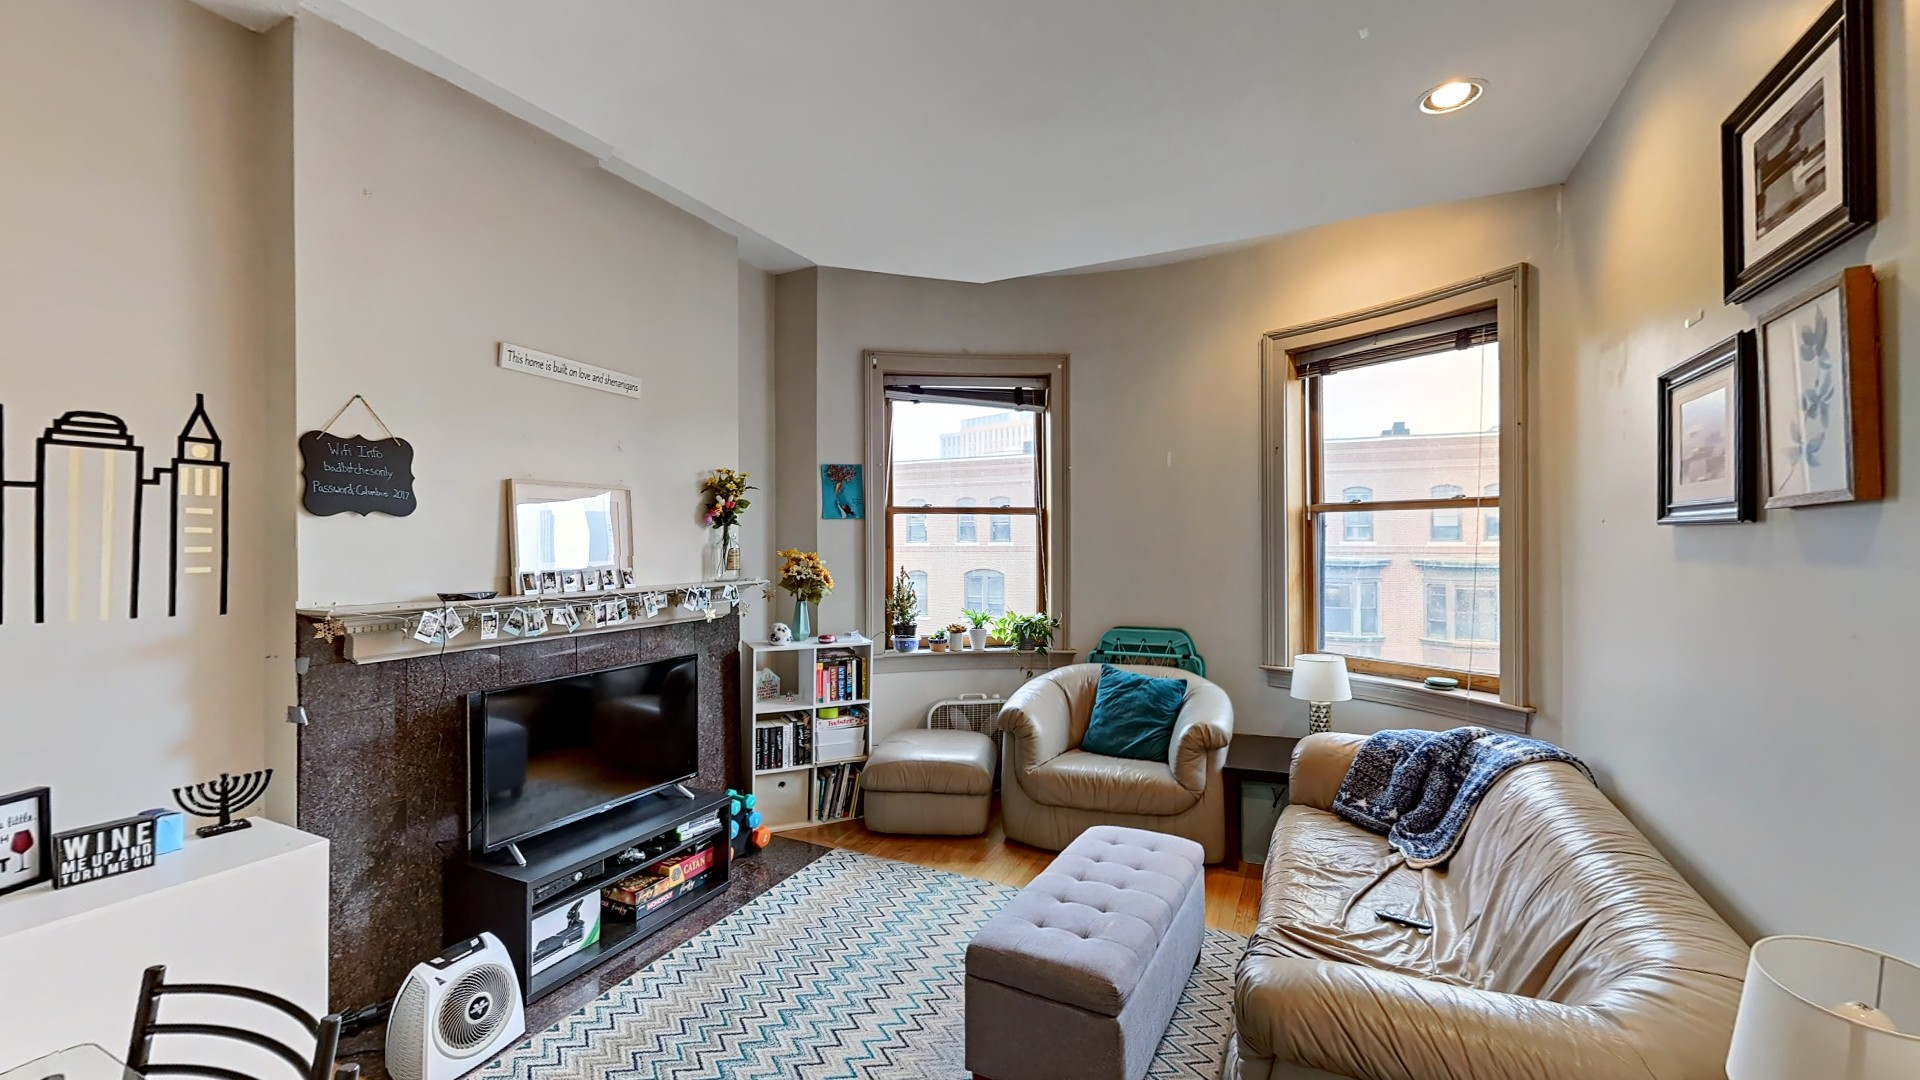 4 Beds, 1 Bath apartment in Boston, Fenway for $5,000